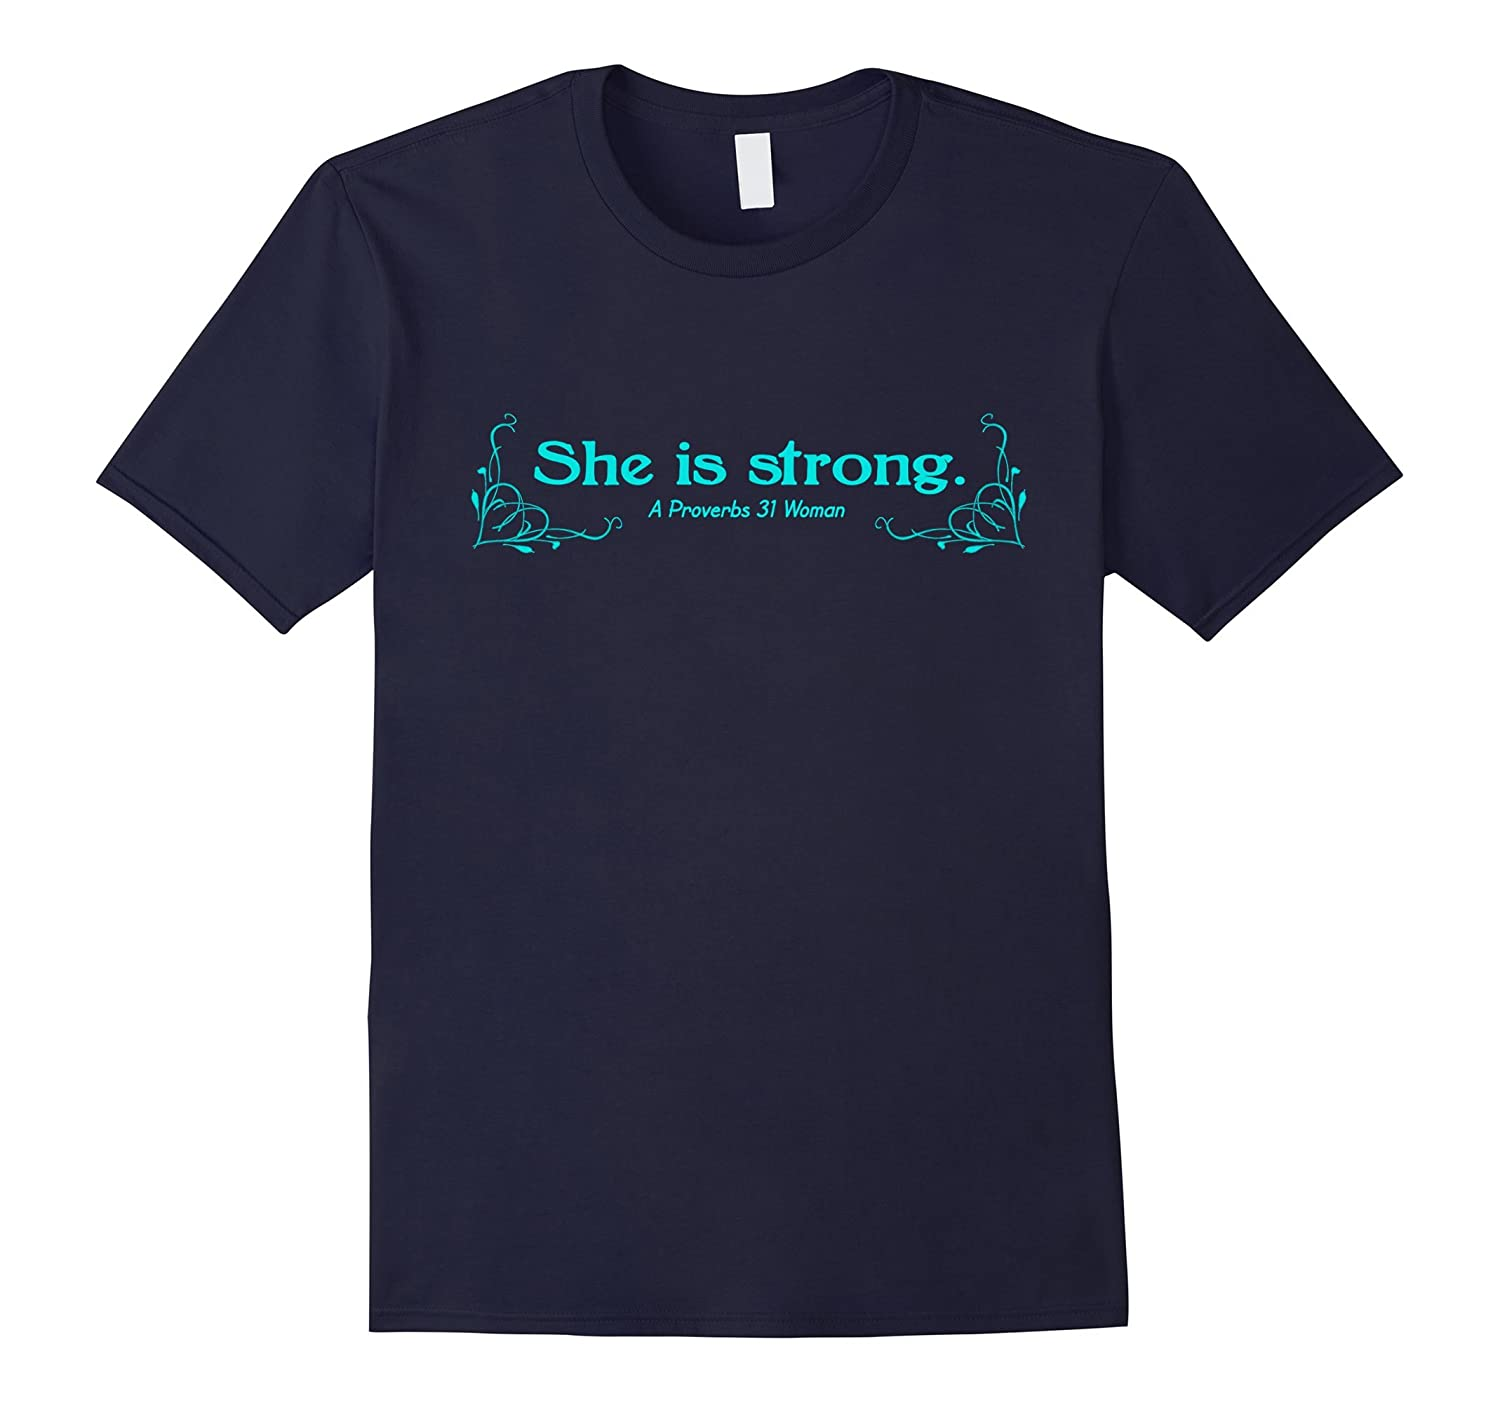 Proverbs 31 Woman-She is Strong Graphic T-Shirt-FL